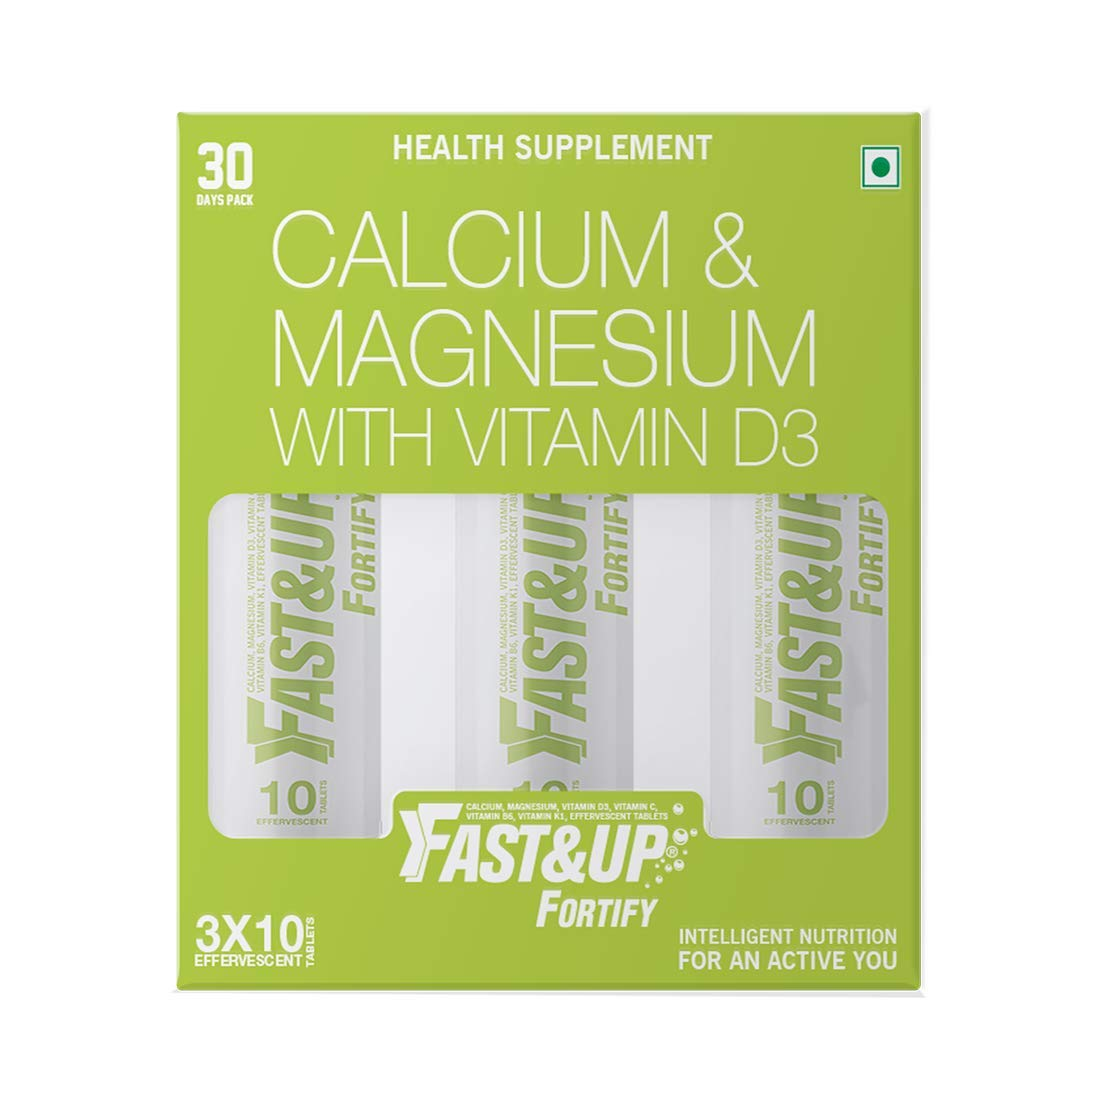 Fast&Up Fortify - Calcium with Essential Vitamin D3 for Complete Health Support - Vitamin D3, Calcium & Magnesium Combination for Better Absorption (30 Effervescent Tablets, Lime & Lemon Flavour)